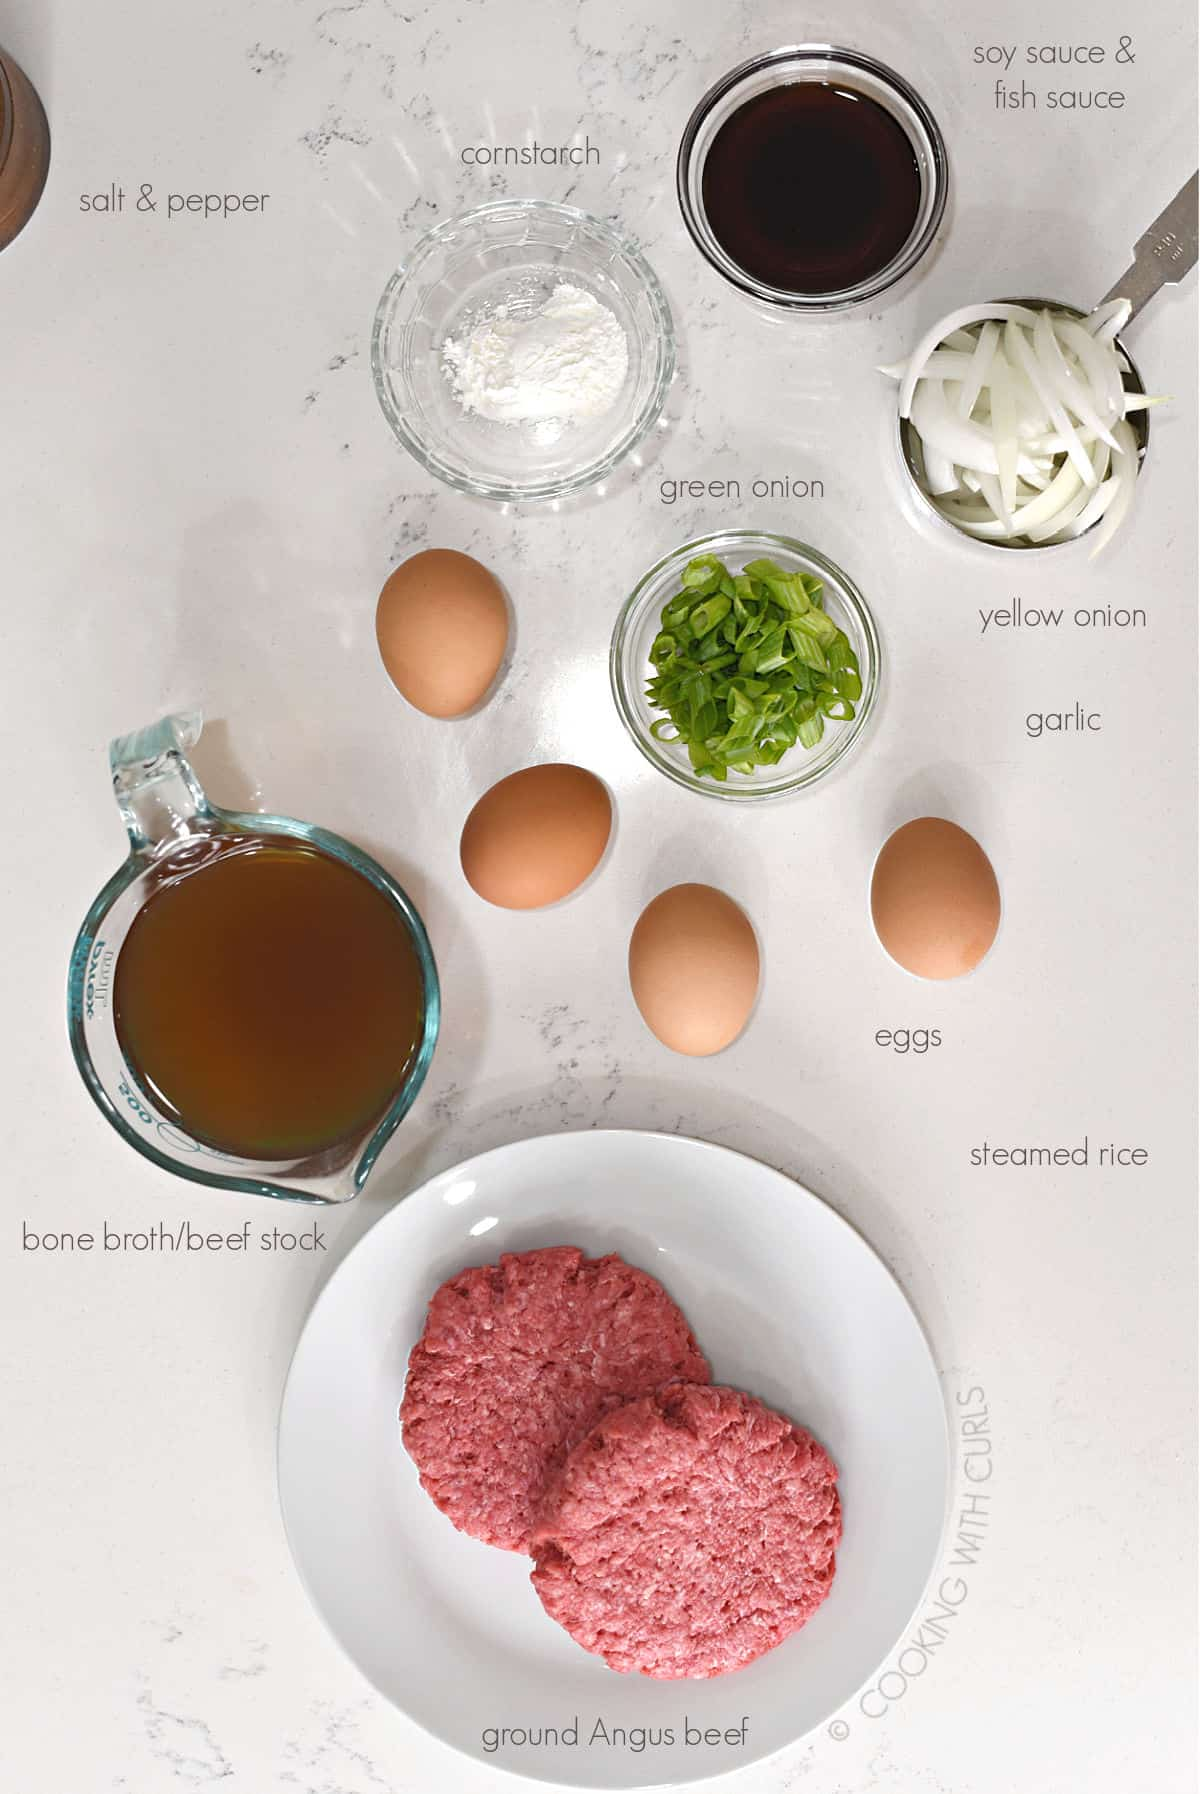 Hawaiian Loco Moco Recipe Ingredients image with labels.